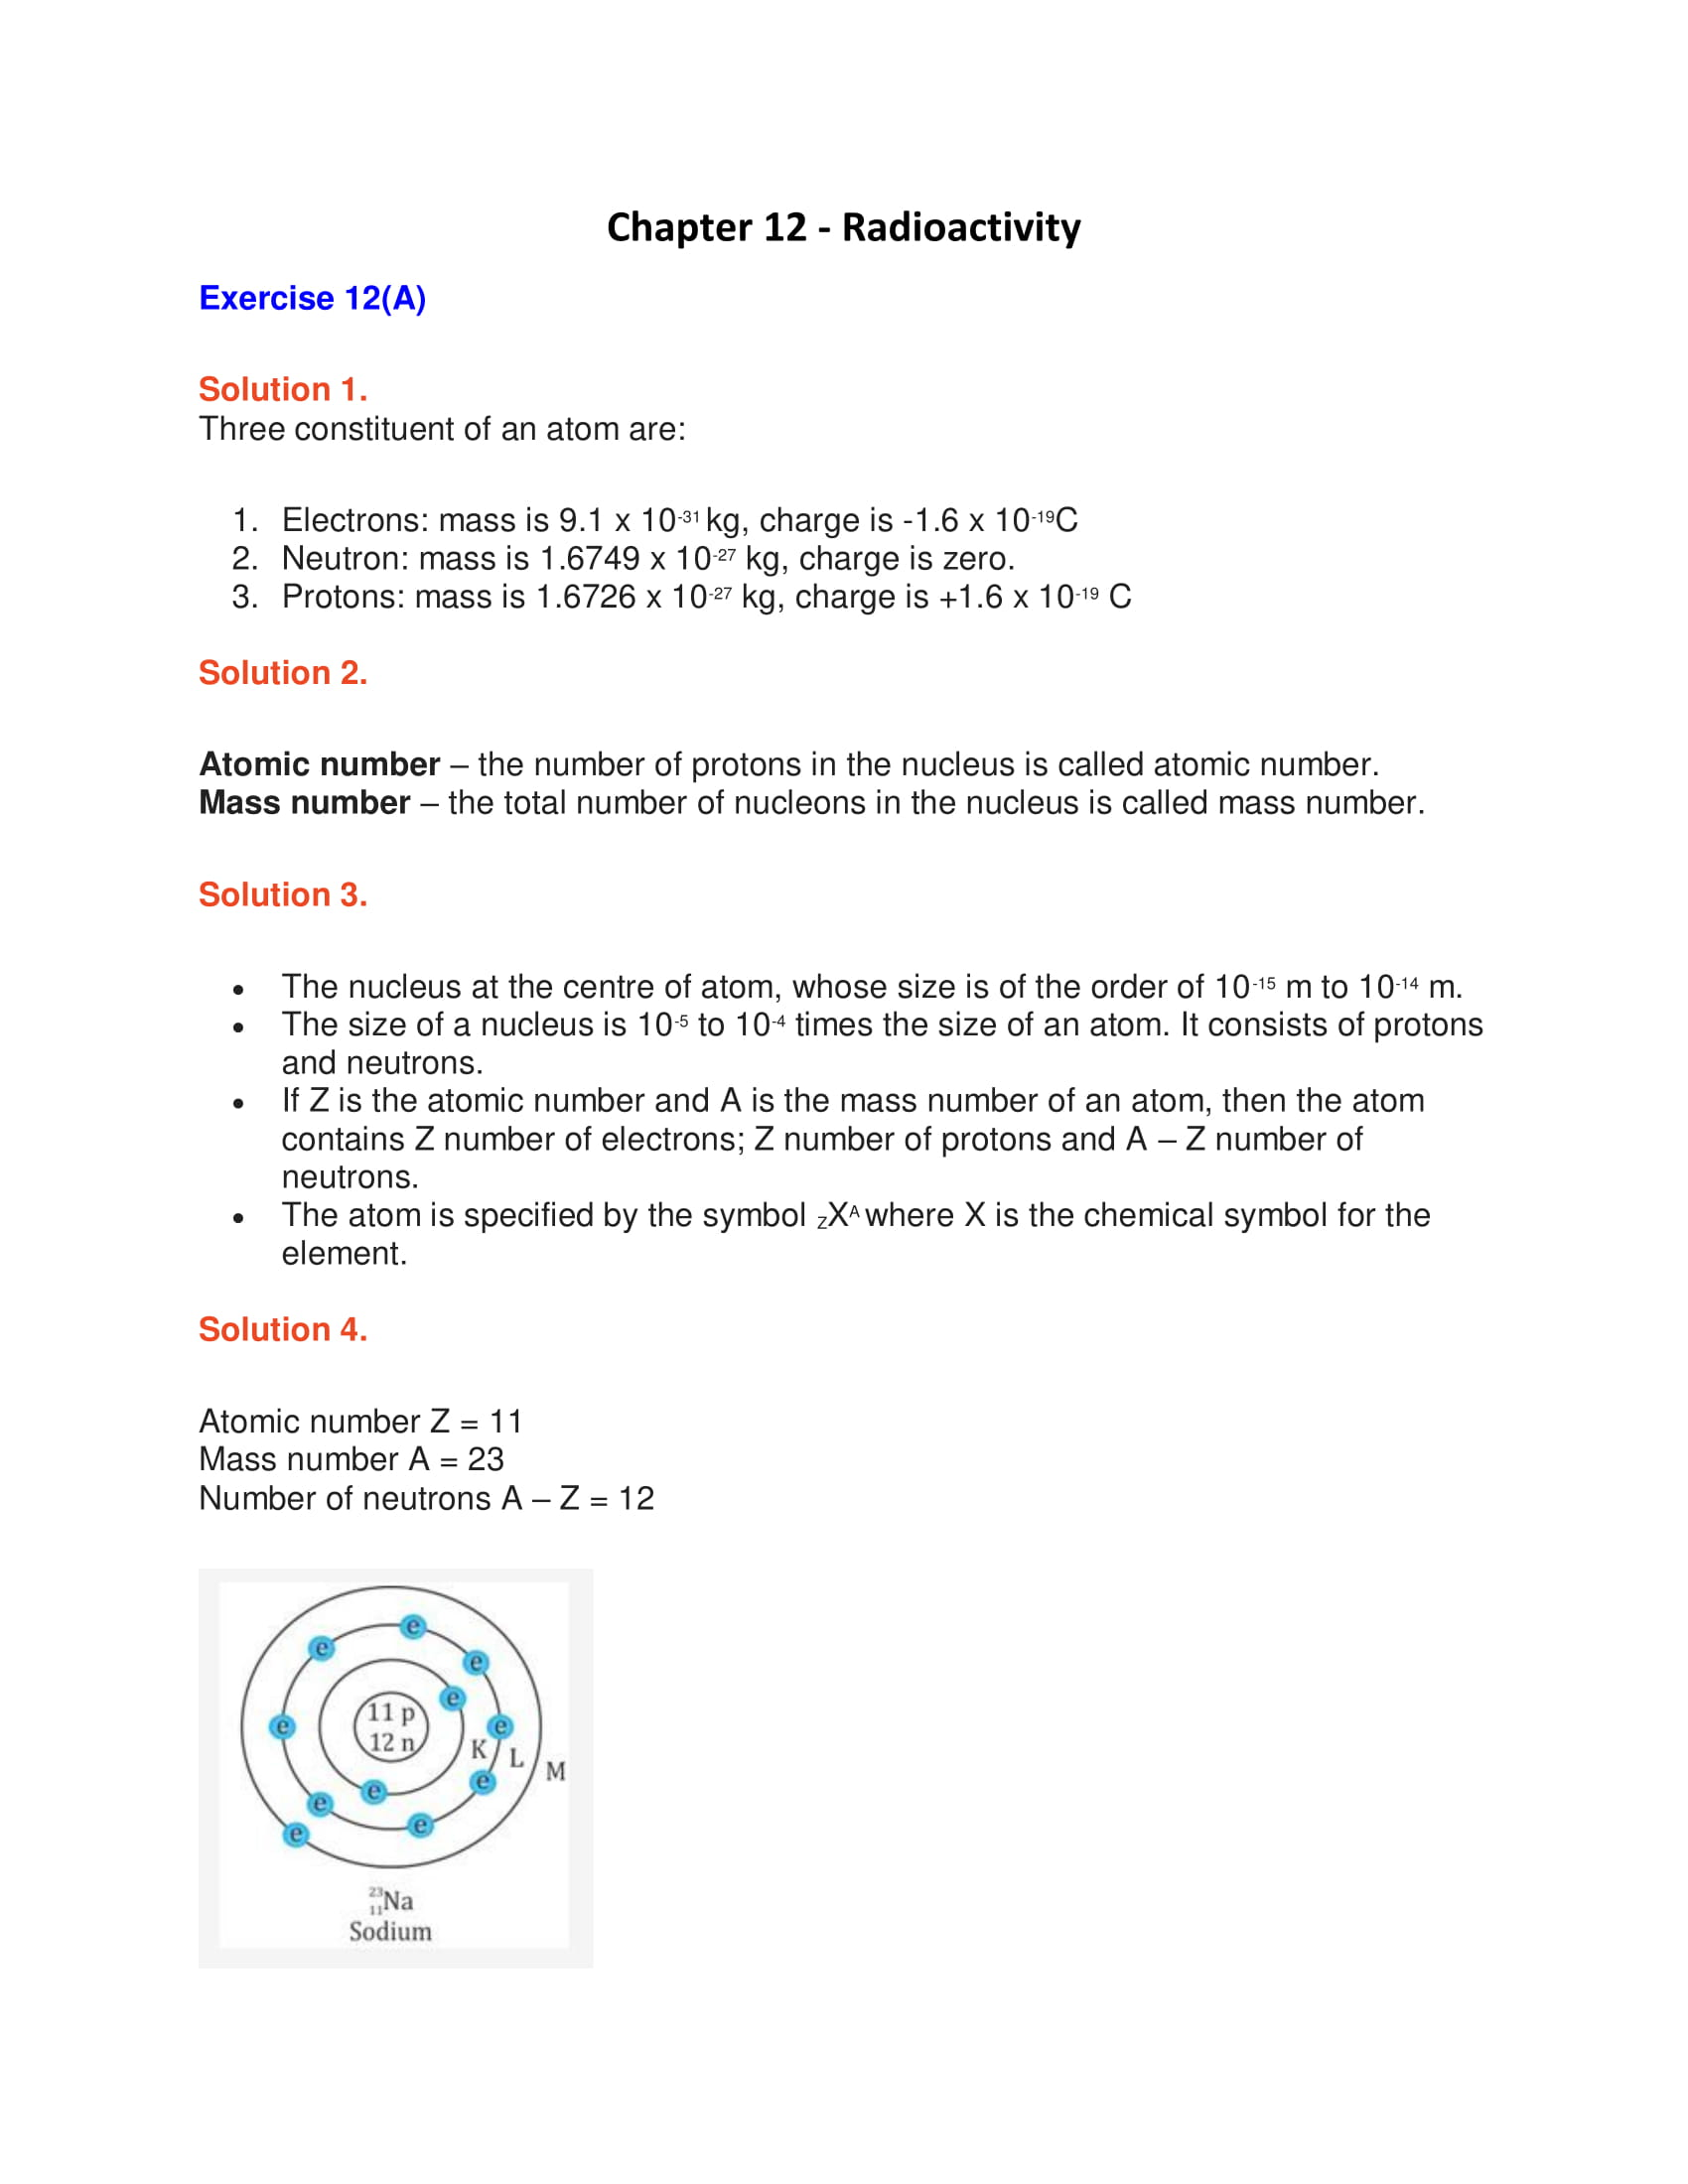 ICSE Solutions Class 10 Physics Chapter 12 Radioactivity - Download